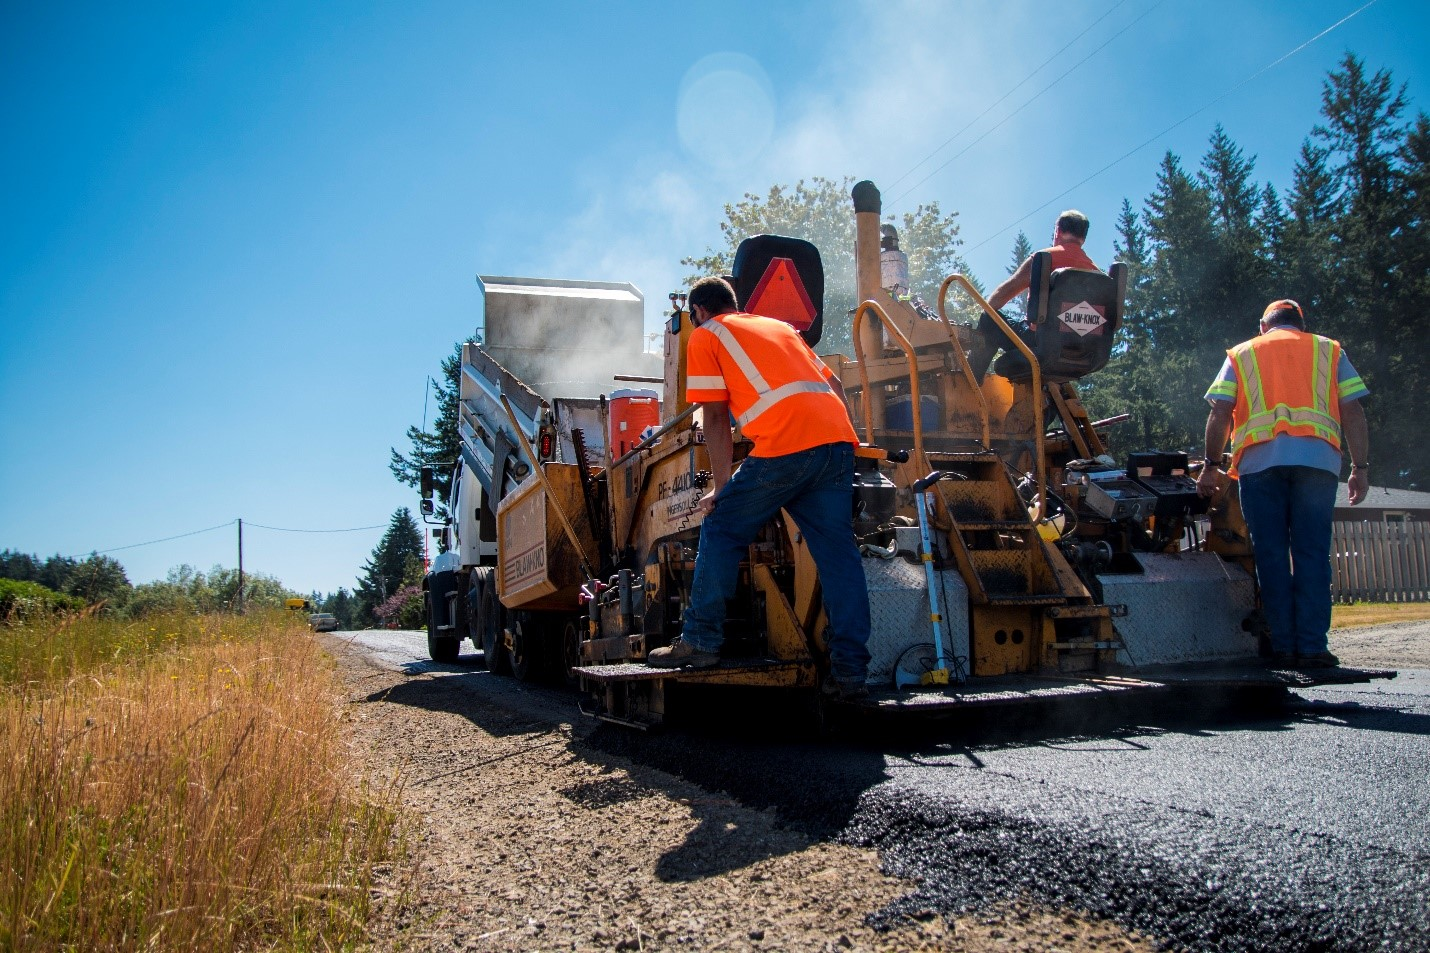 working on Clackamas County Roads